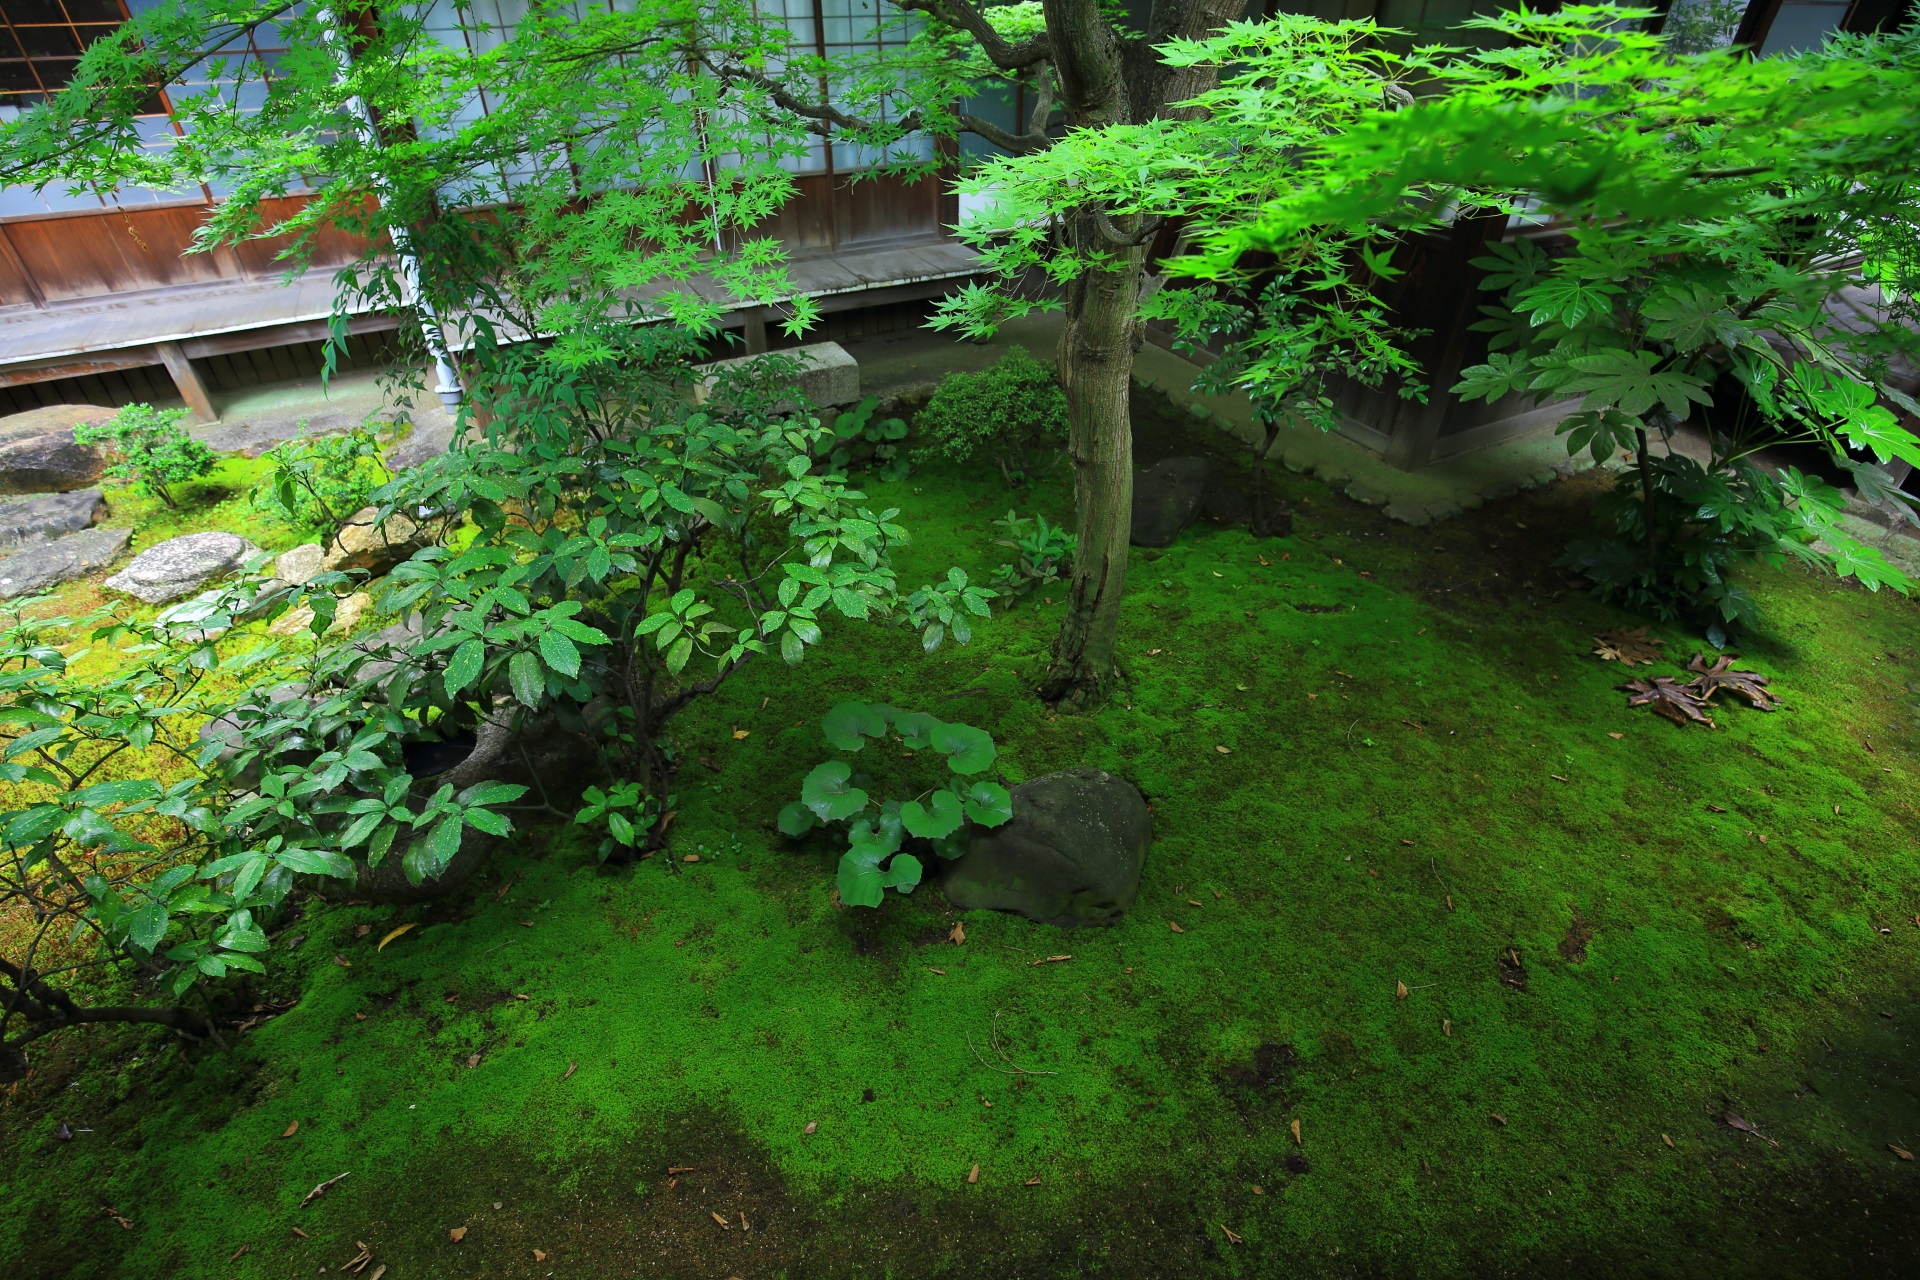 Beautiful green garden of Honpoji-Temple in Kyoto